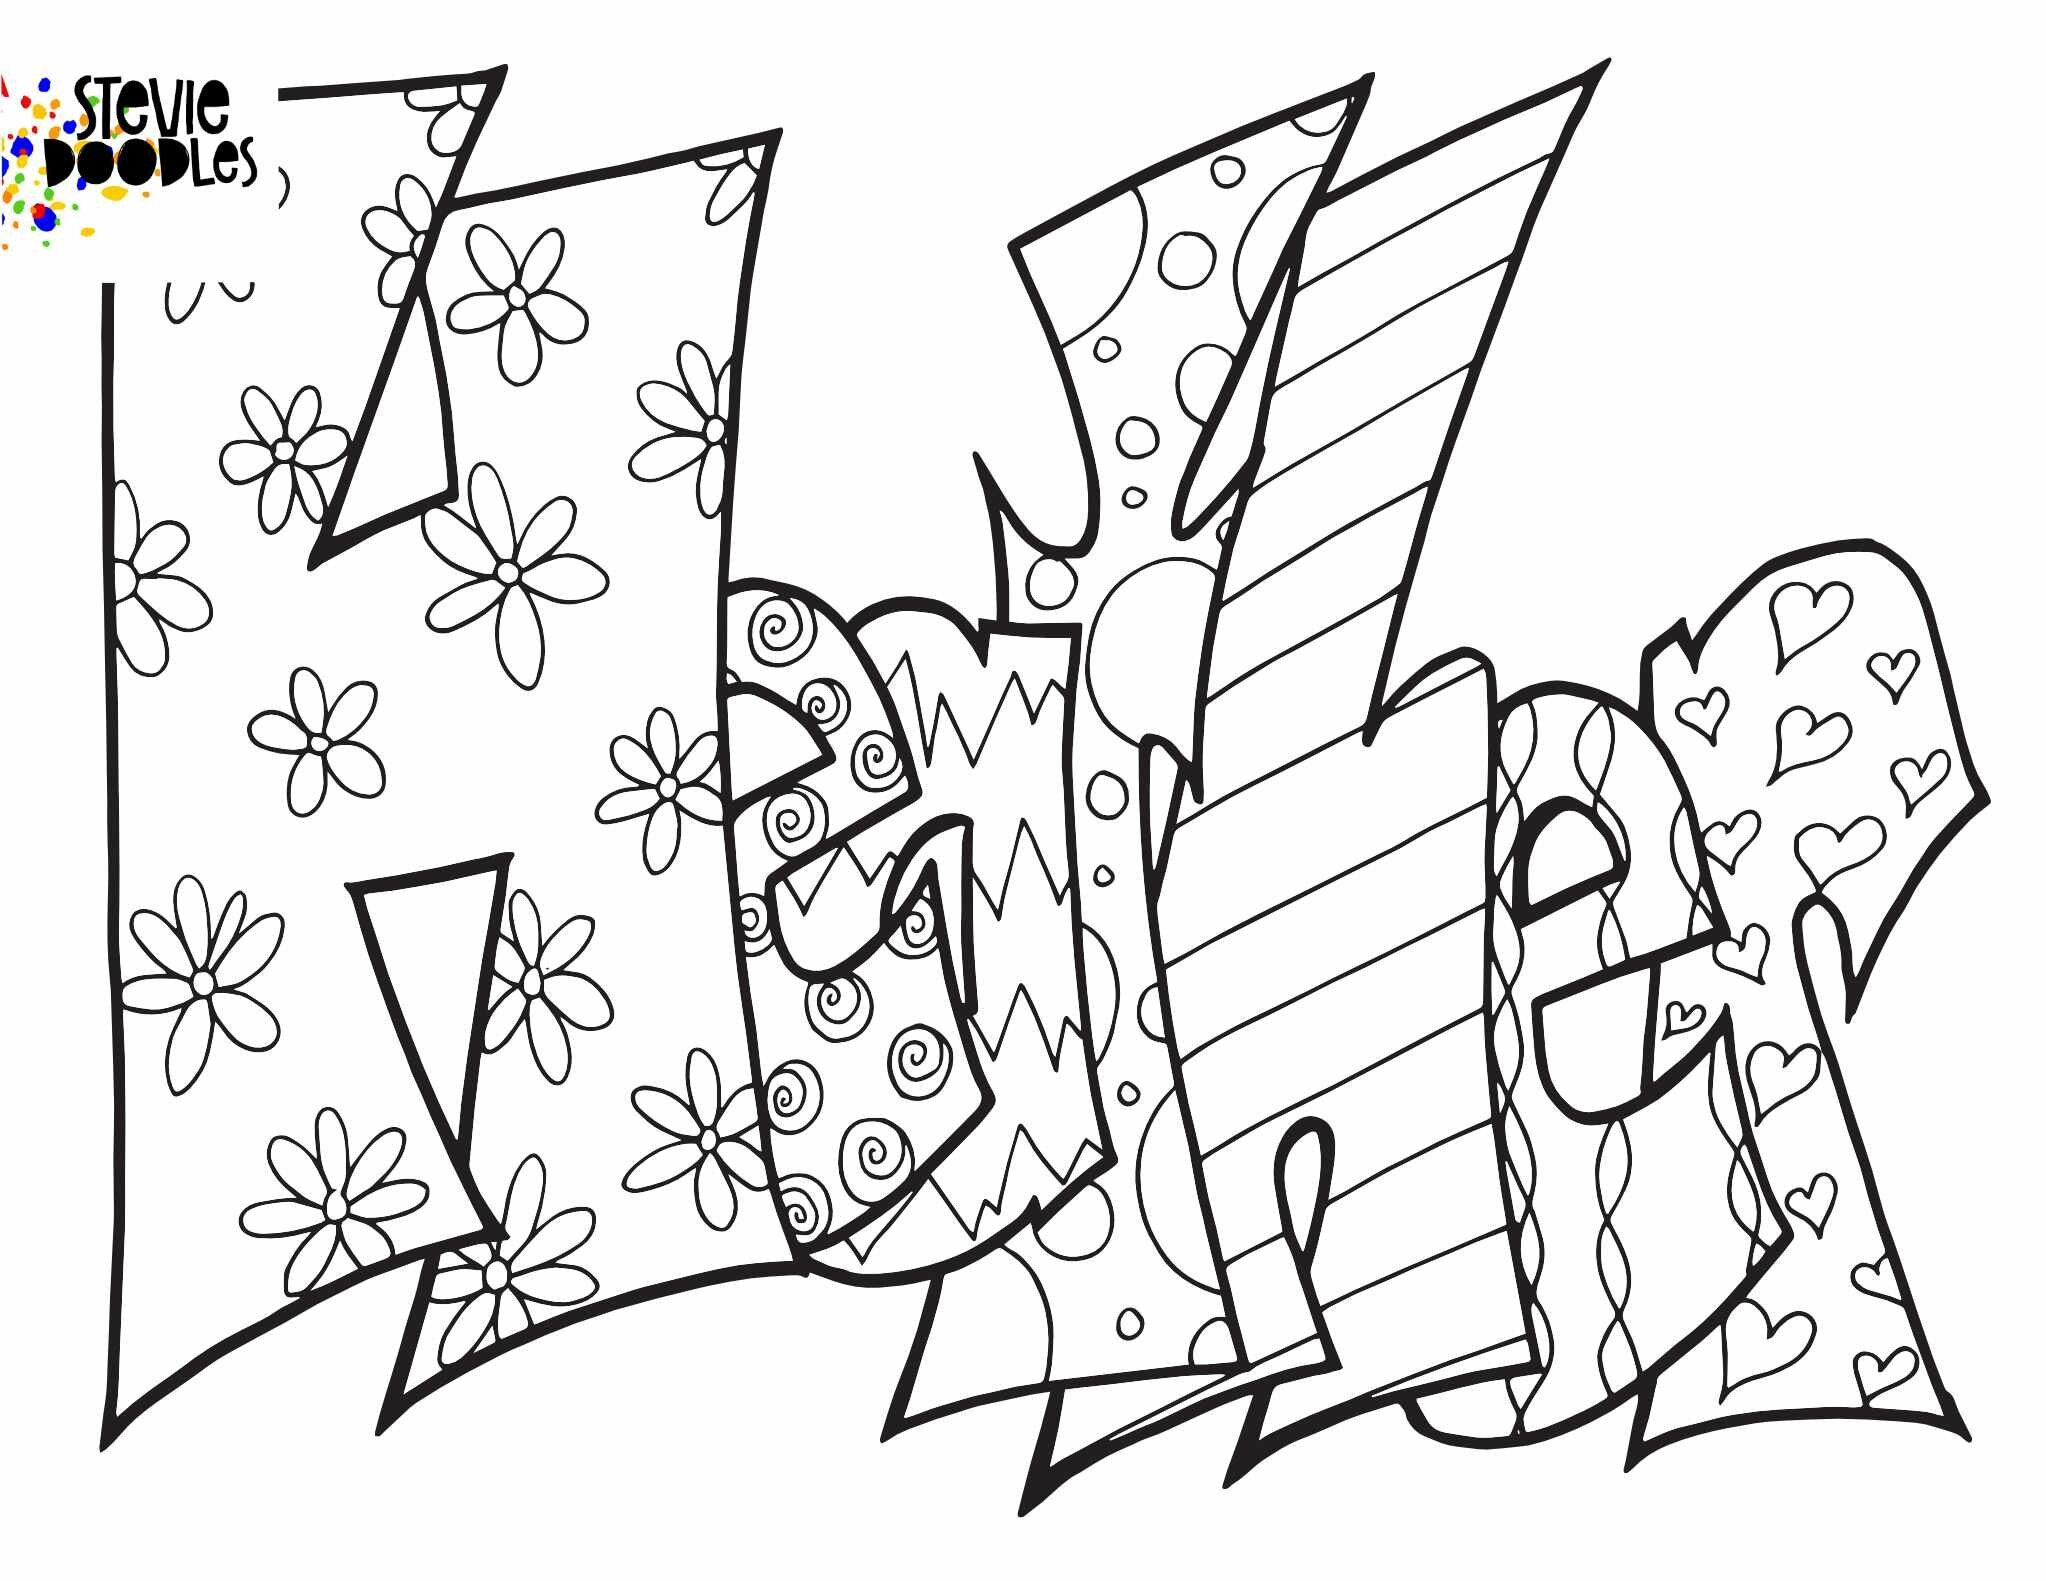 Heather Free Printable Coloring Page Stevie Doodles Free Printable Coloring Pages Name Coloring Pages Coloring Pages